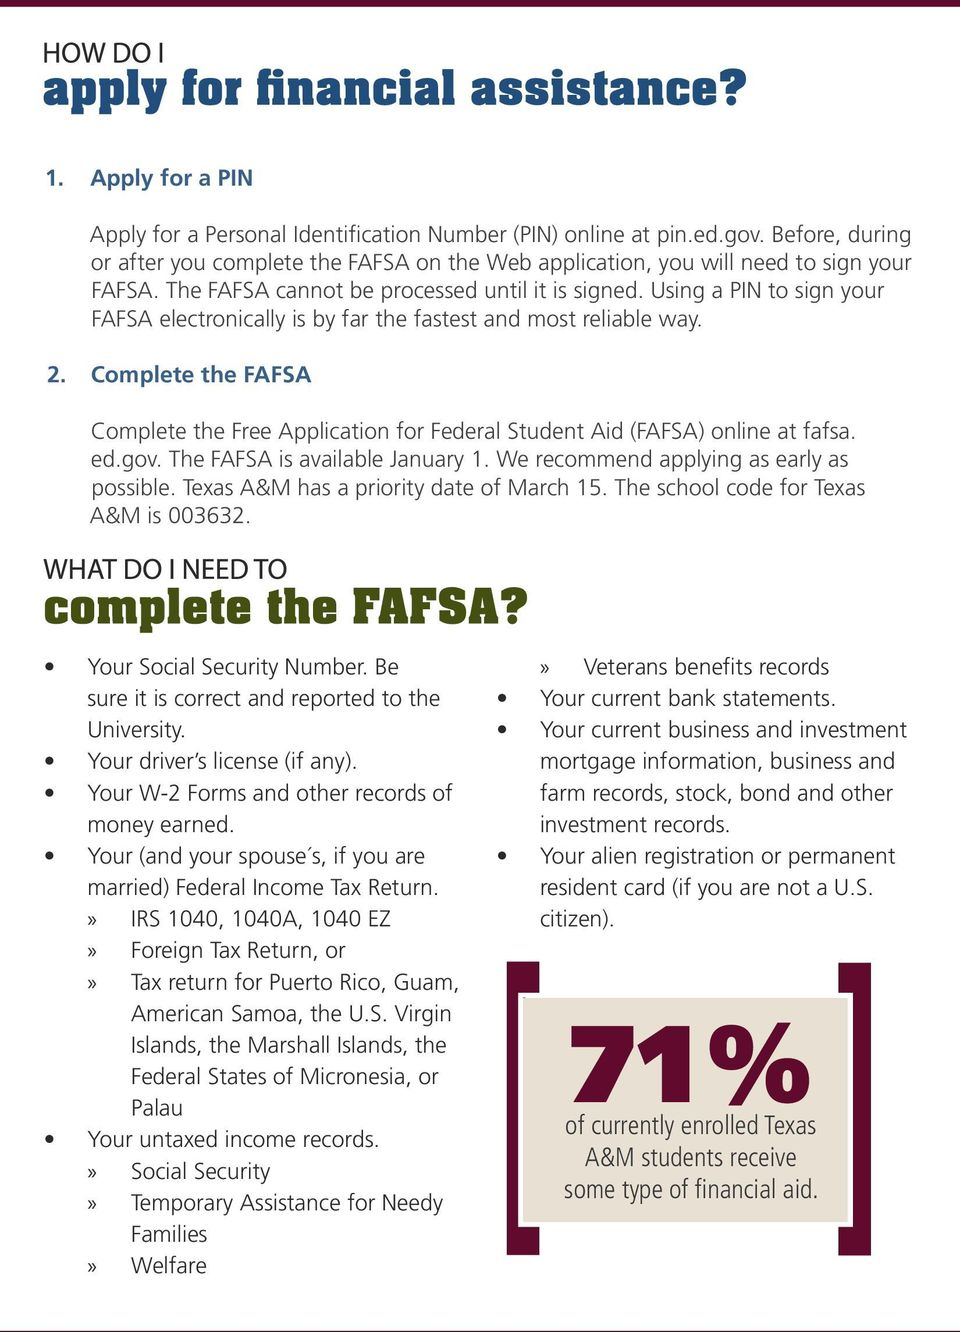 Complete the FAFSA Complete the Free Application for Federal Student Aid (FAFSA) online at fafsa. ed.gov. The FAFSA is available January 1. We recommend applying as early as possible.